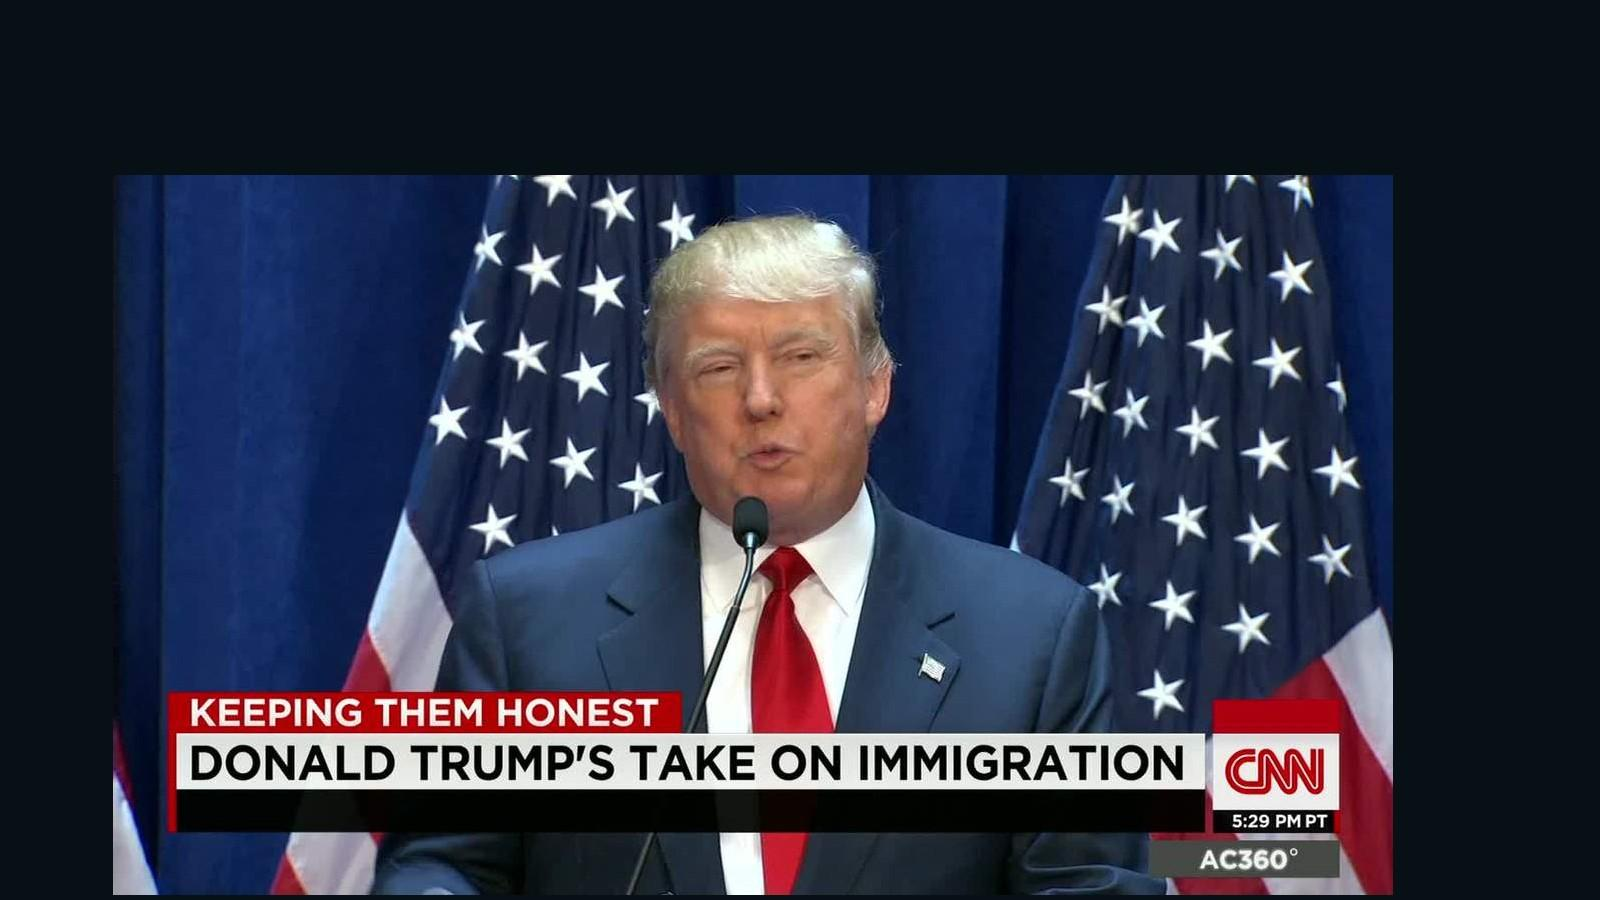 Trump speaks on CNN about his stance on immigration. Source: CNN